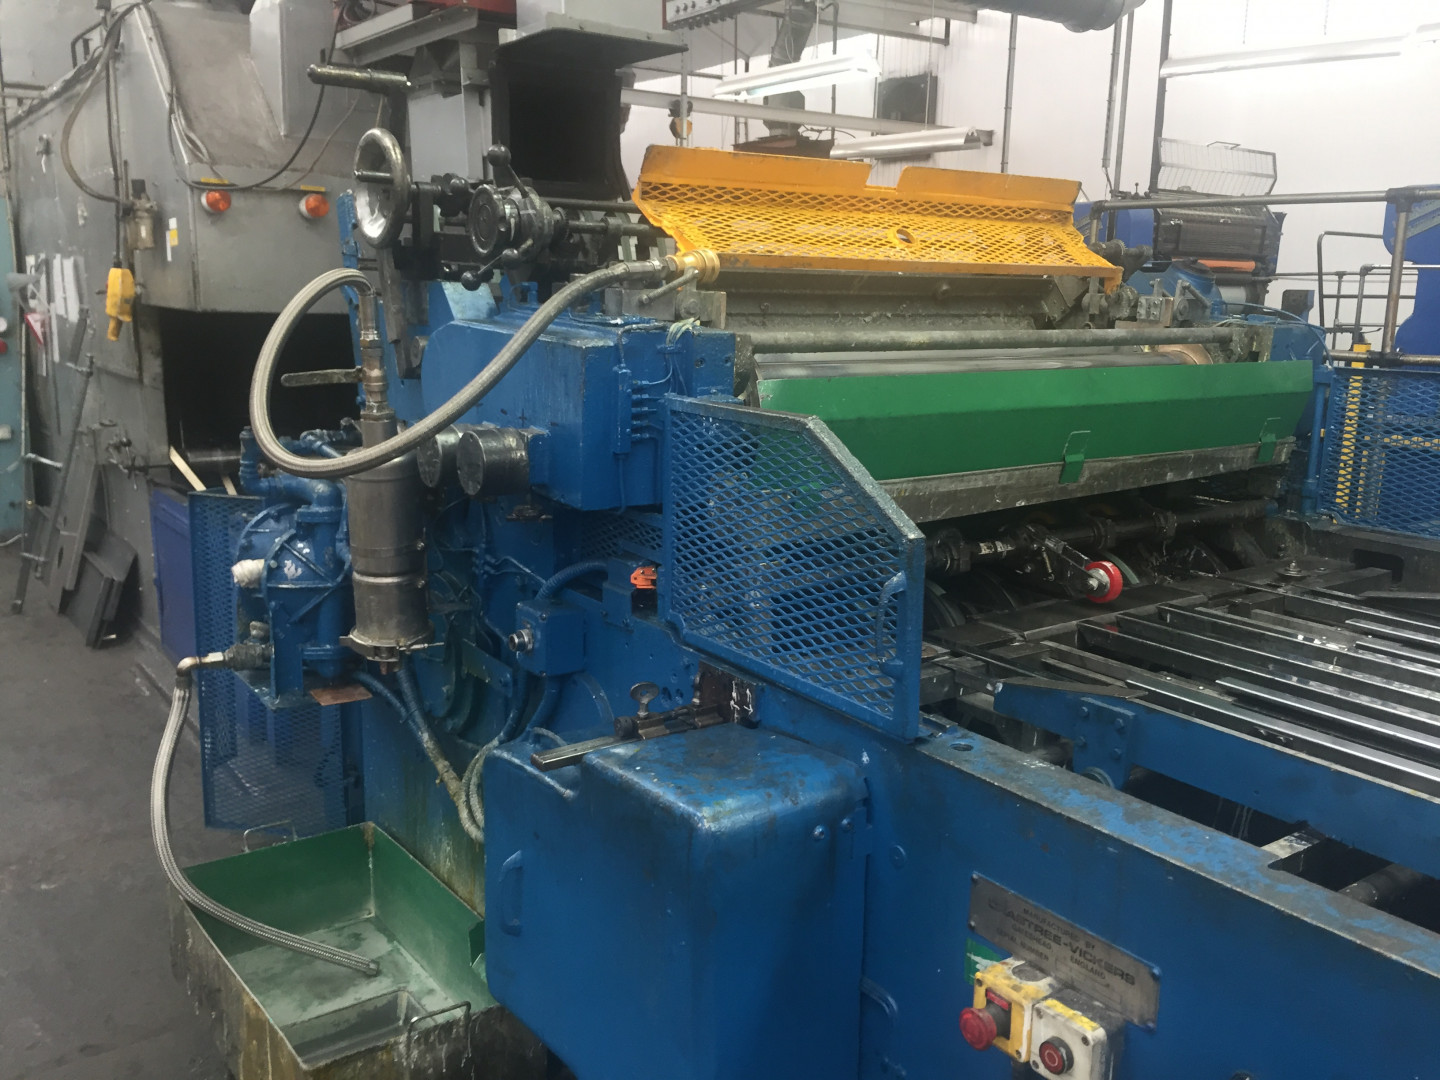 Crabtree F1 varnish coating machine - sheet feeder